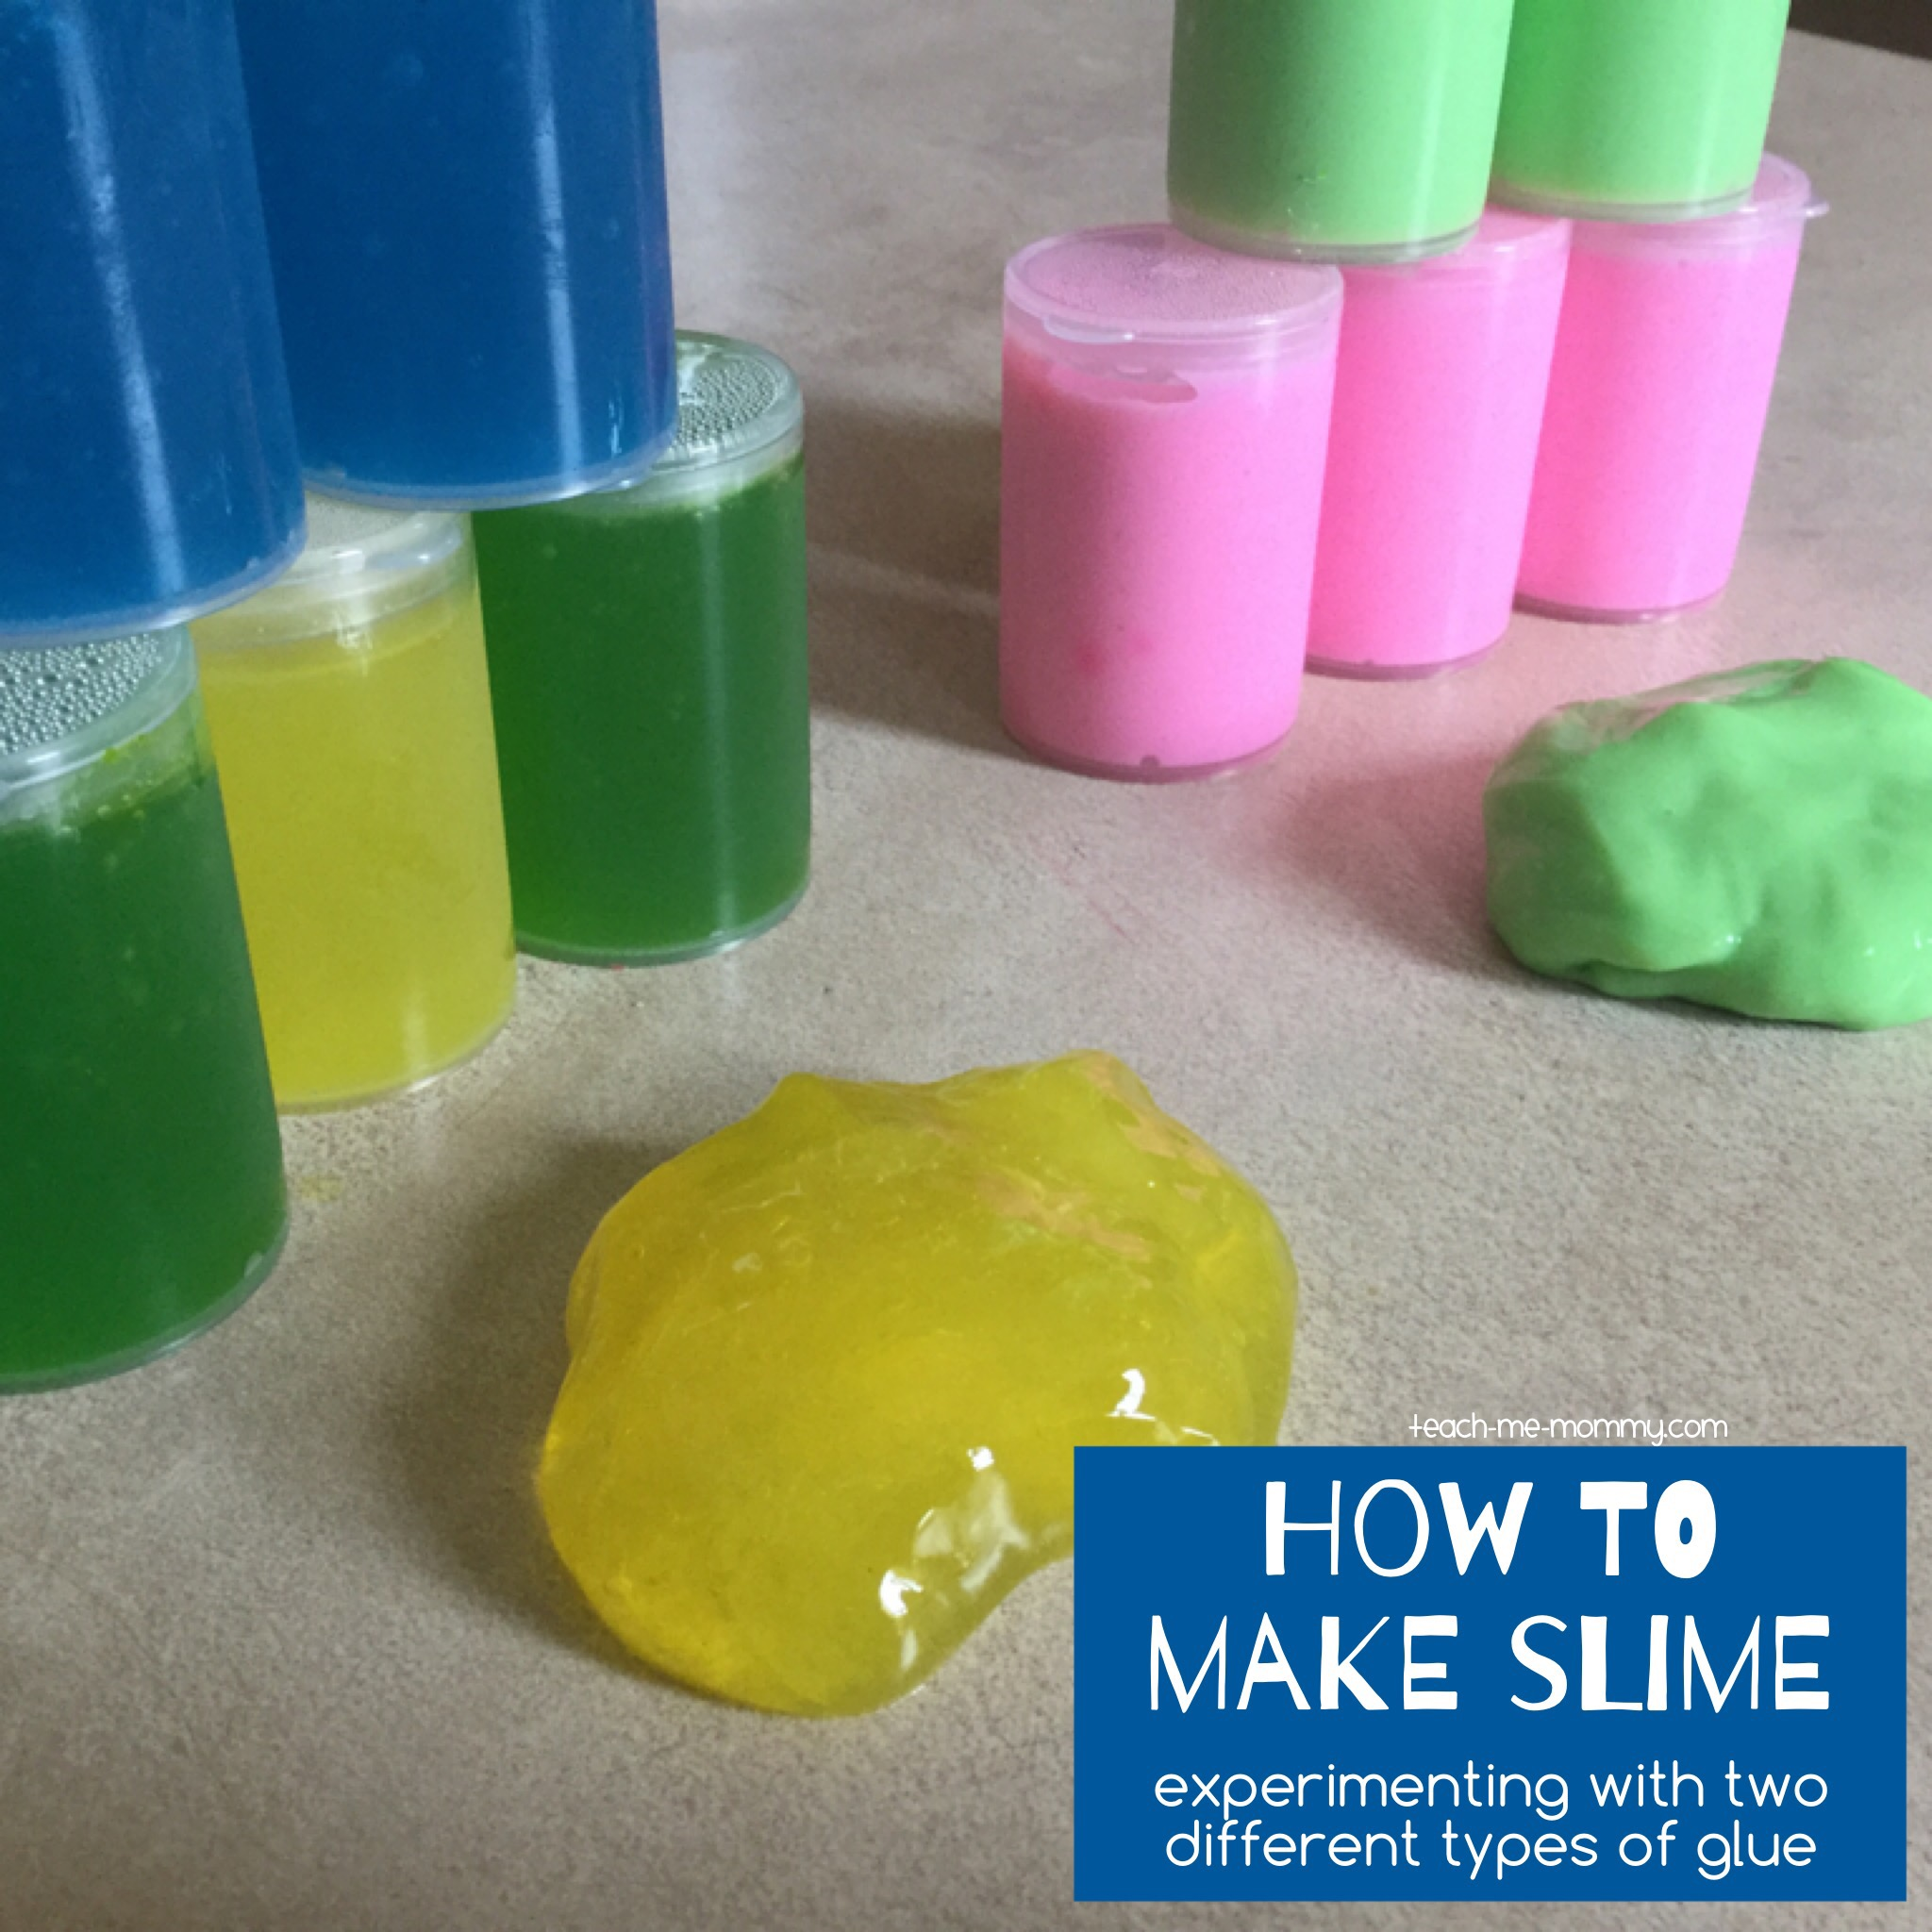 How to make slime teach me mommy make slime ccuart Images